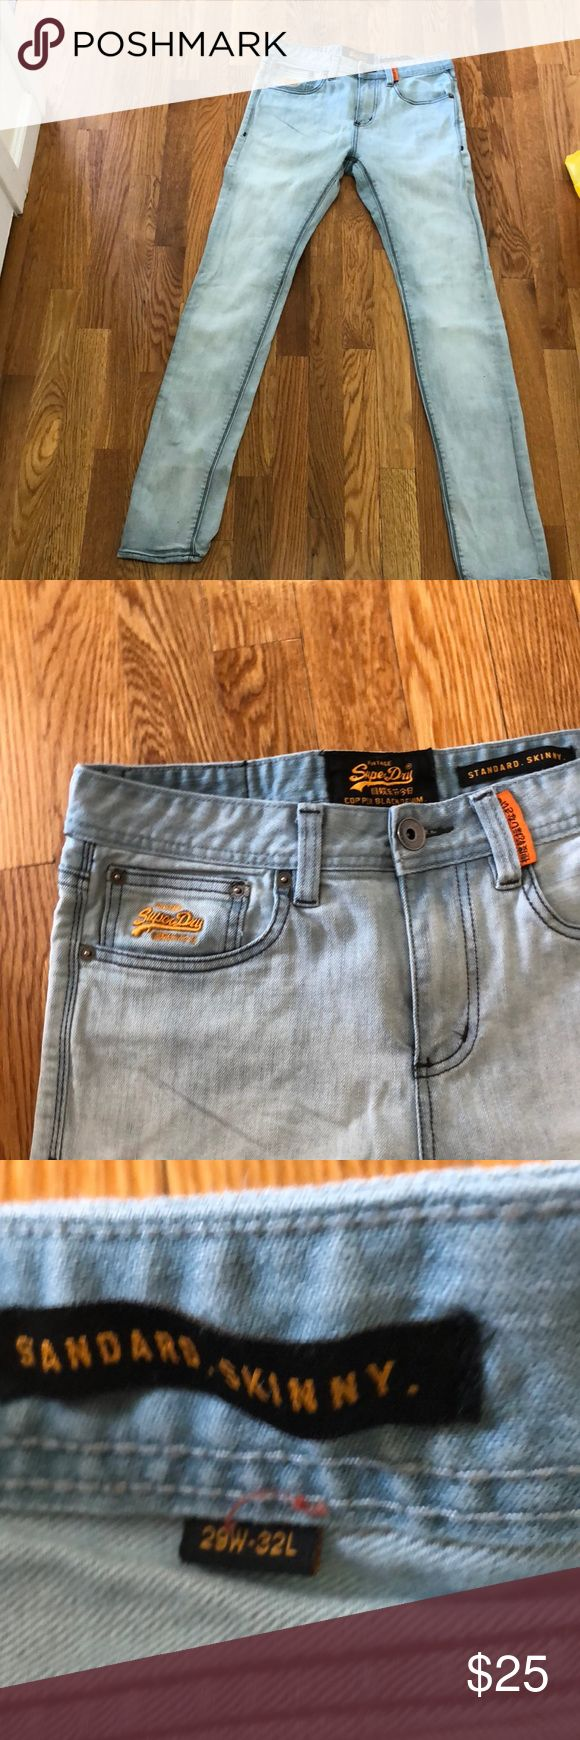 Men's super dry skinny jeans light wash size 29/32 These are men's super dry light wash standard skinny jeans size 29/32  worn twice no stains no rips no marks from a pet free smoke free home Superdry Jeans Slim Straight